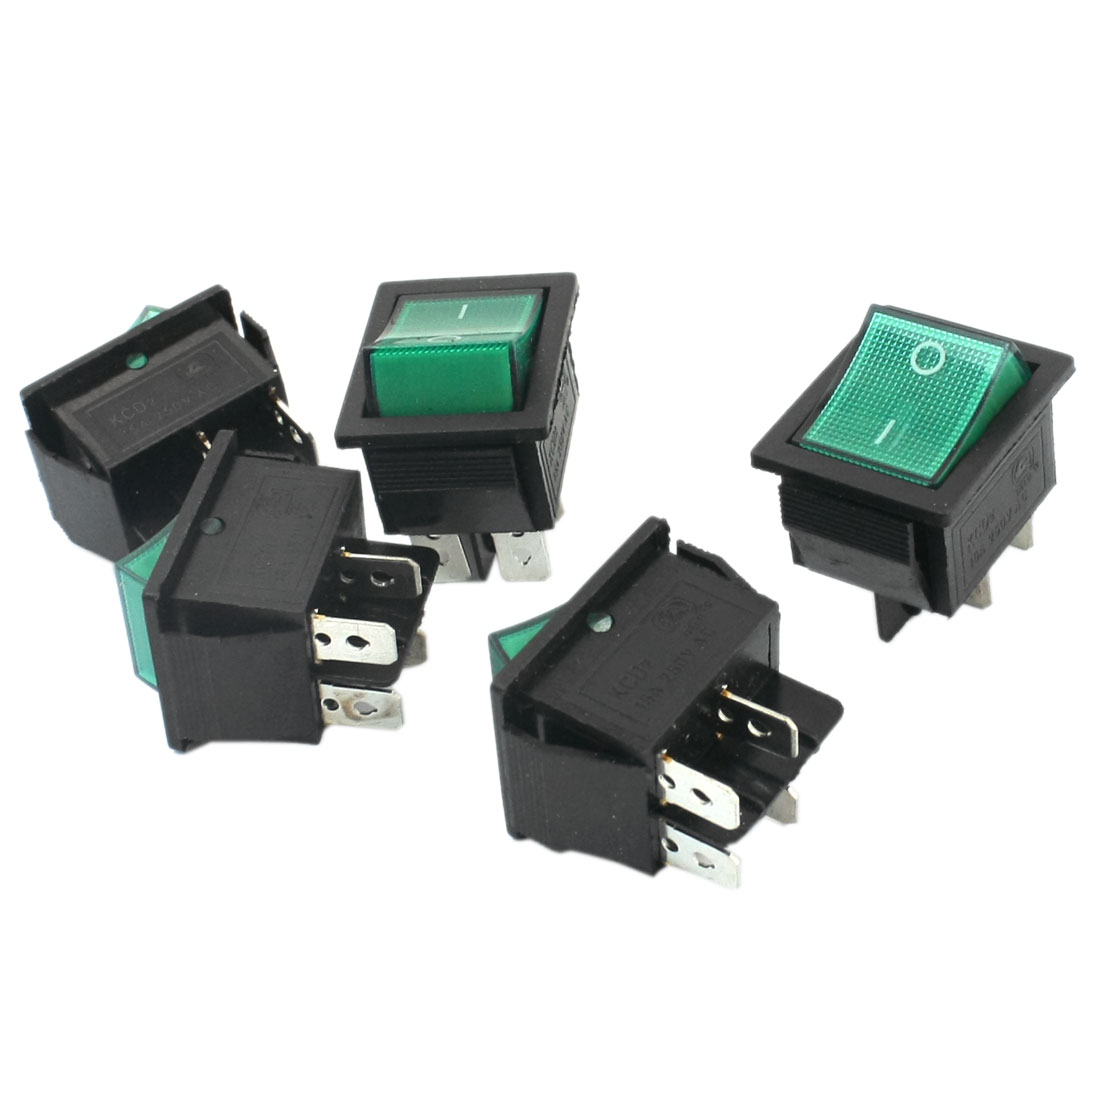 5 PCS AC250V 15A DPST ON-OFF 4 Terminals Green Button Snap in Rocker Switch